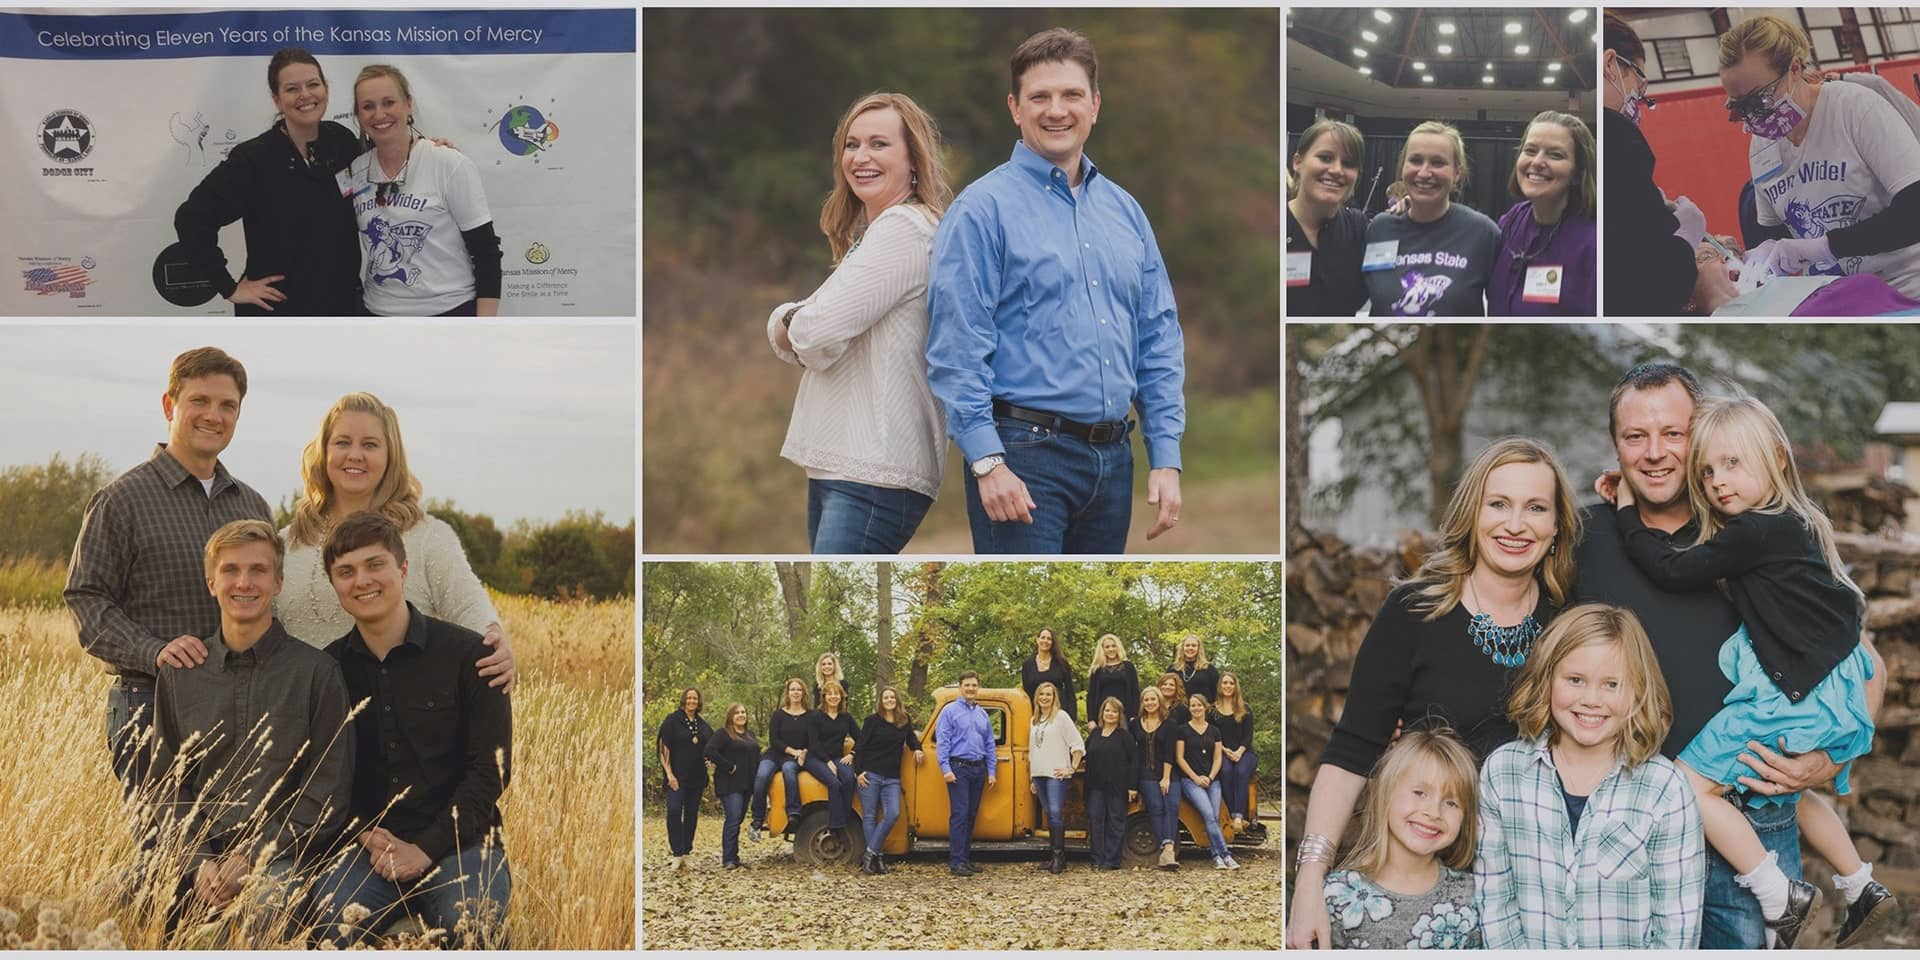 Collage of images of the team and families of Smile Connections Family Dental in Wichita, KS.